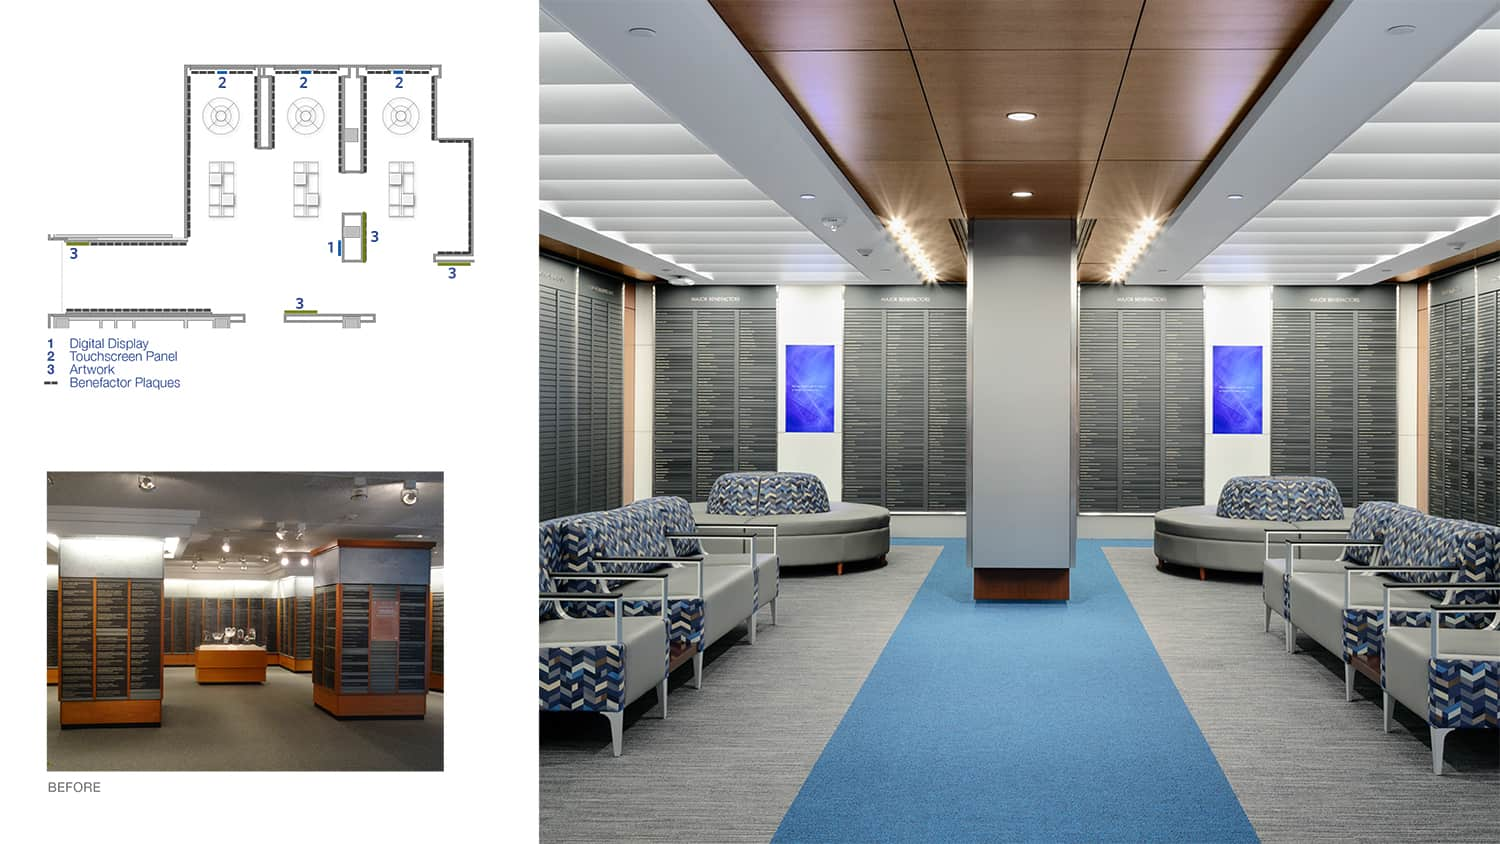 Before and after images of the Hall of Benefactors.